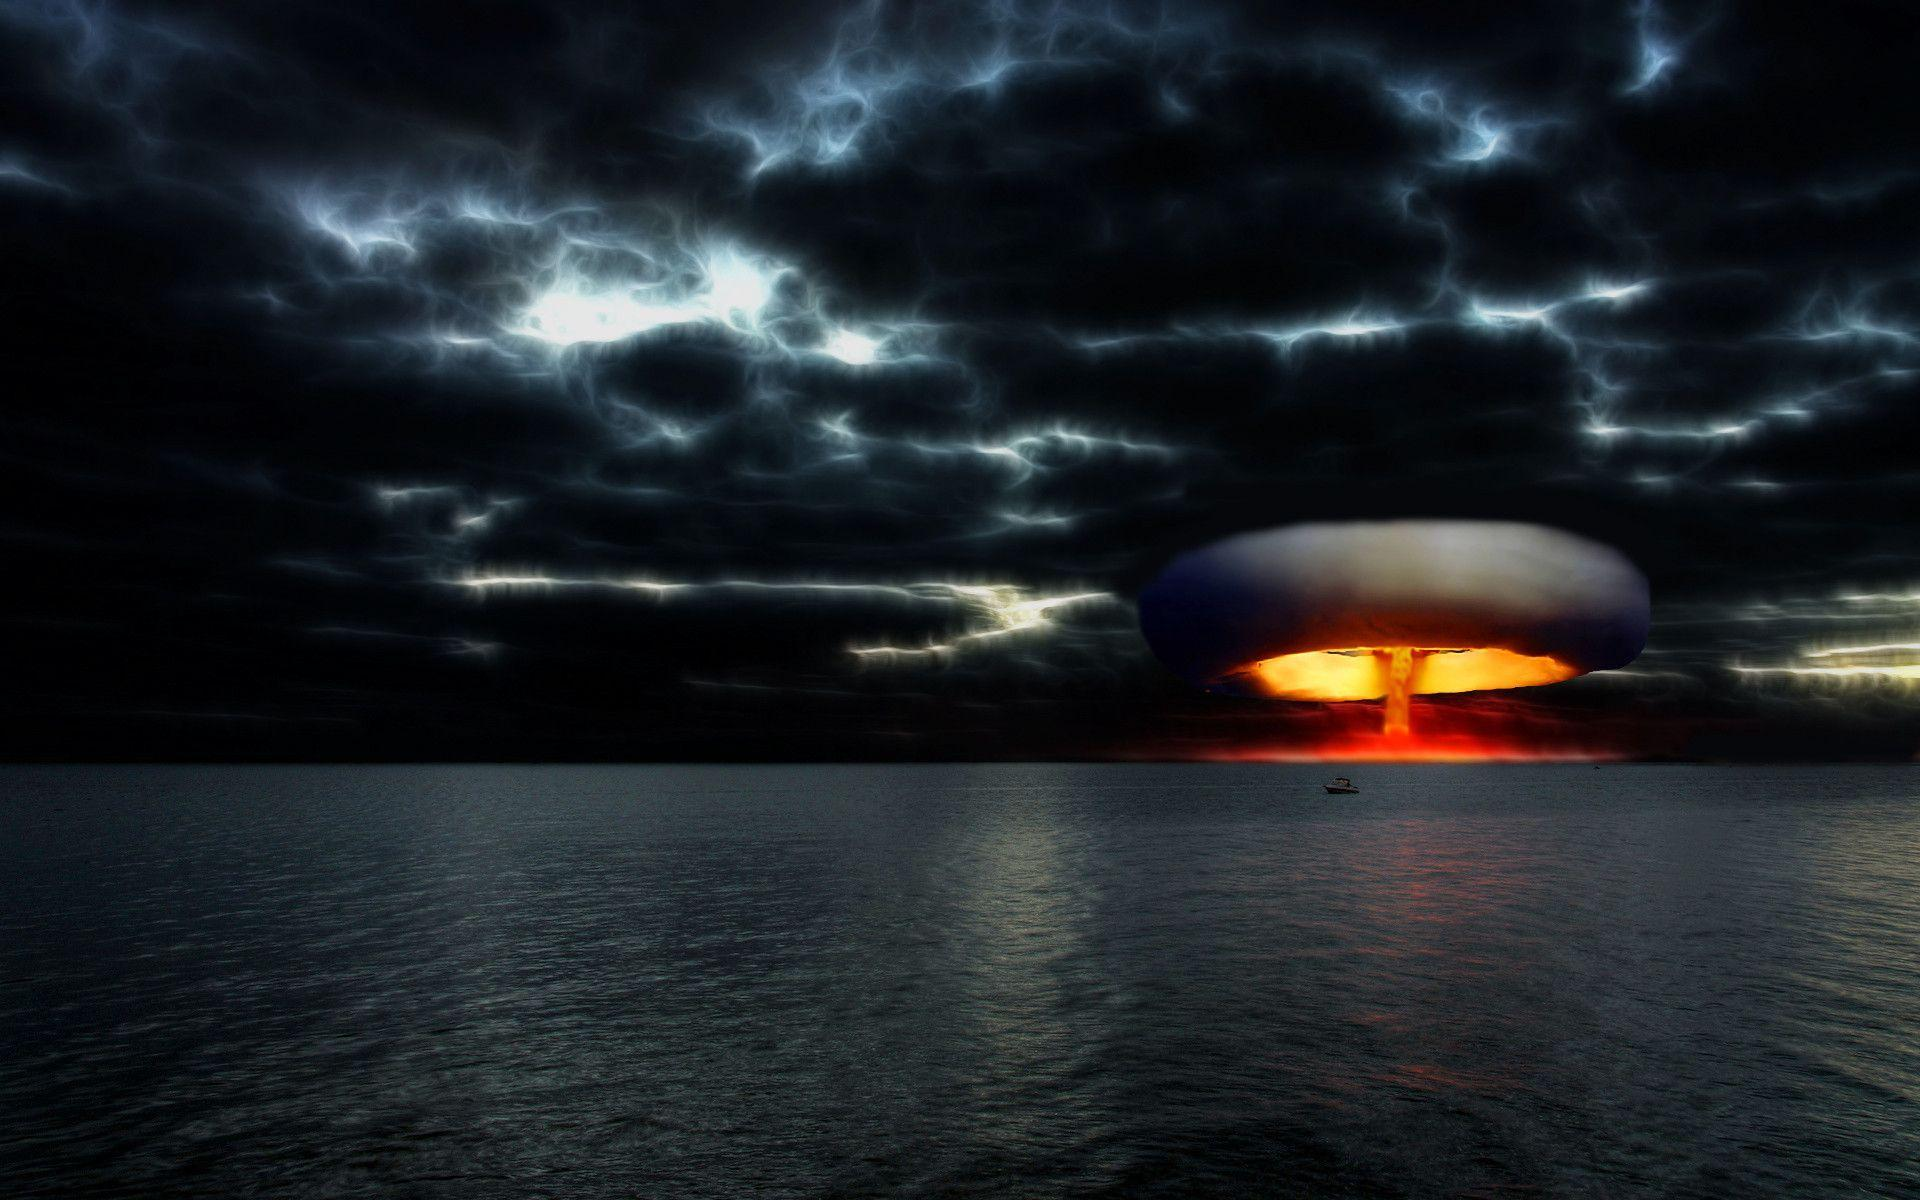 Nuclear Bomb Explosion Wallpaper Images & Pictures - Becuo